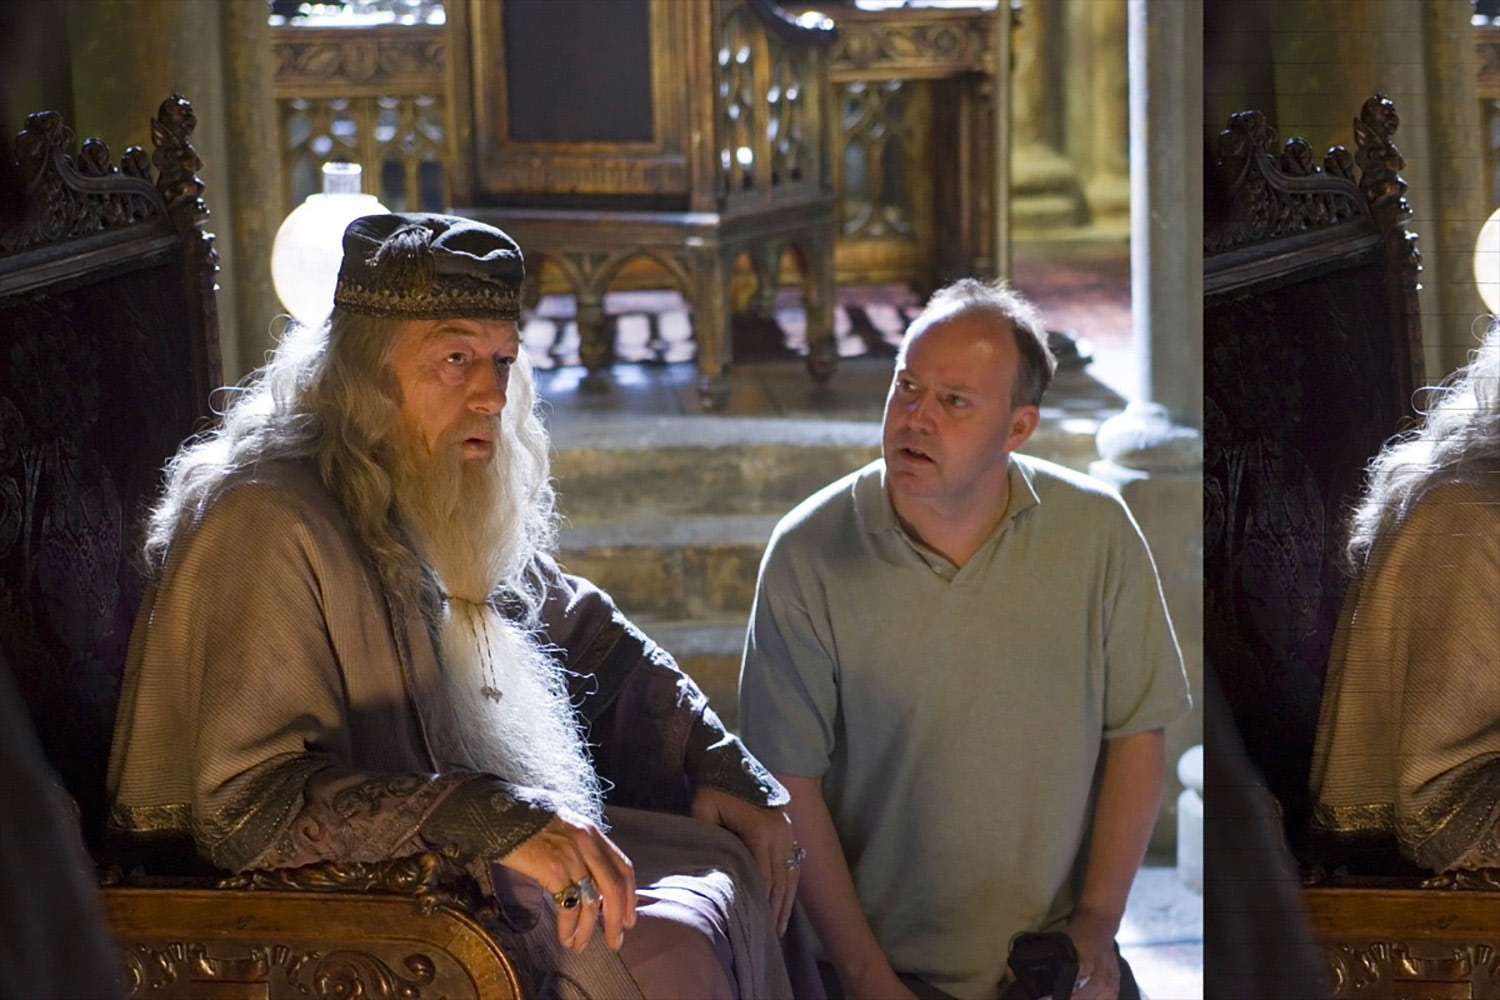 David Yates and Michael Gambon